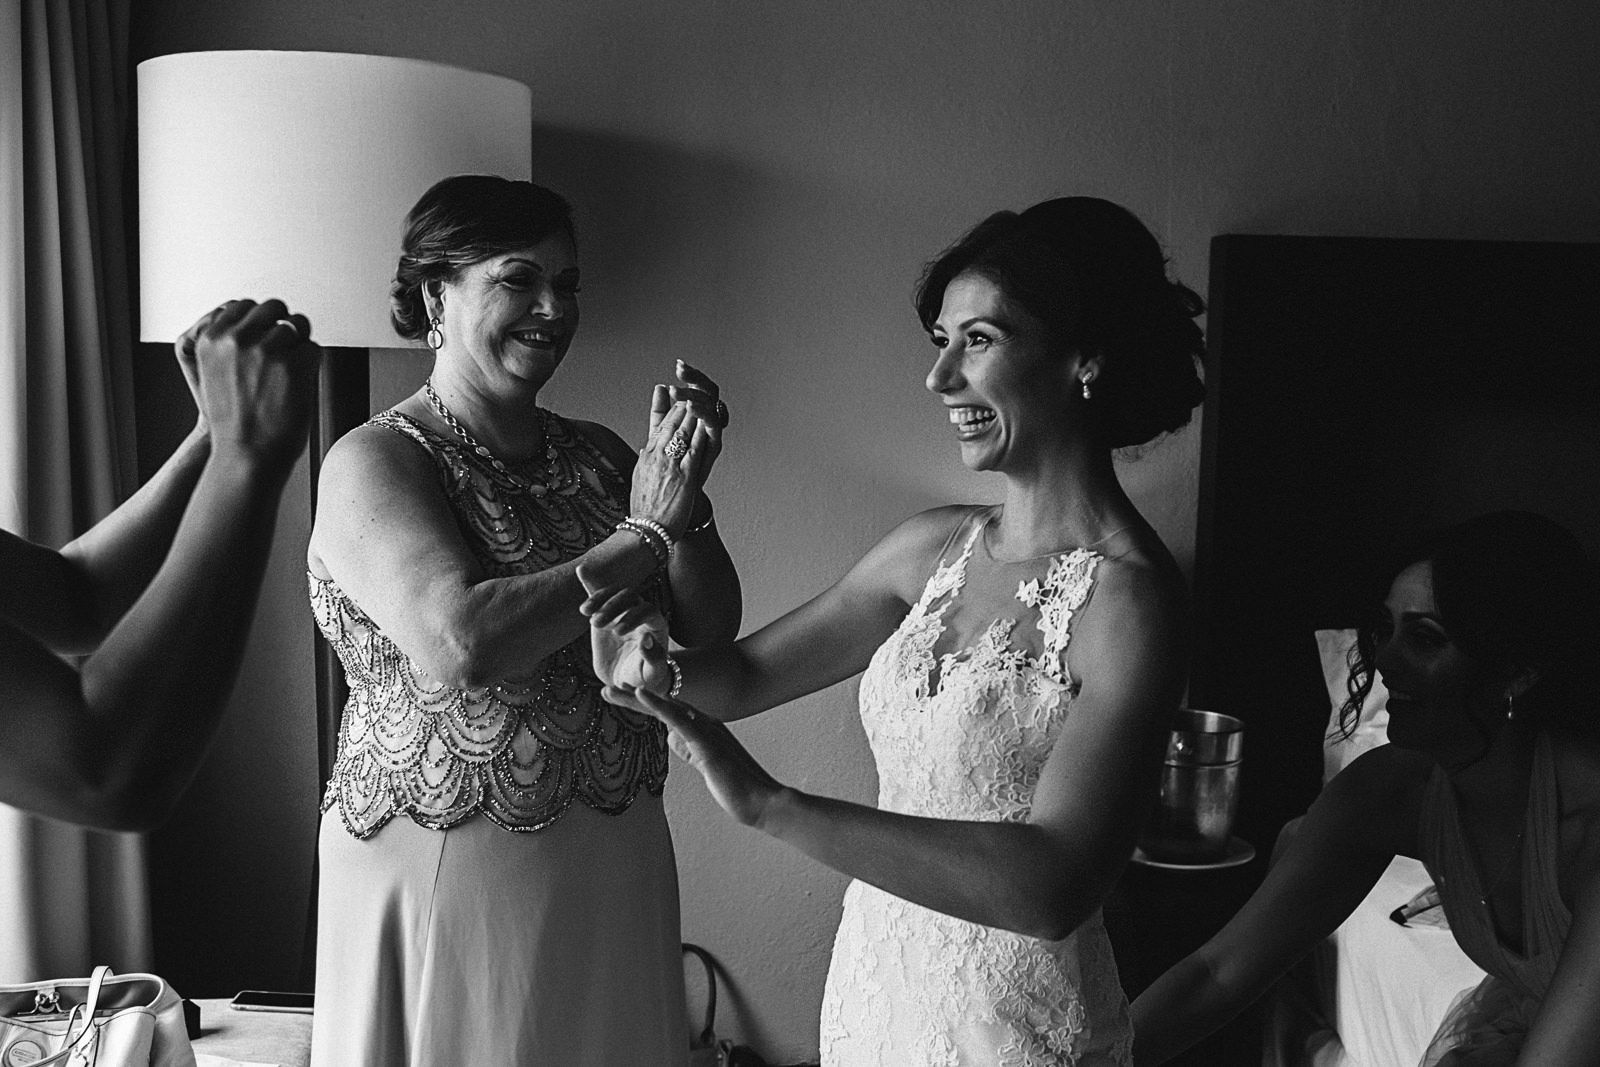 Bride and mother-of-the-bride laughing while bridesmaid help her with the wedding dress